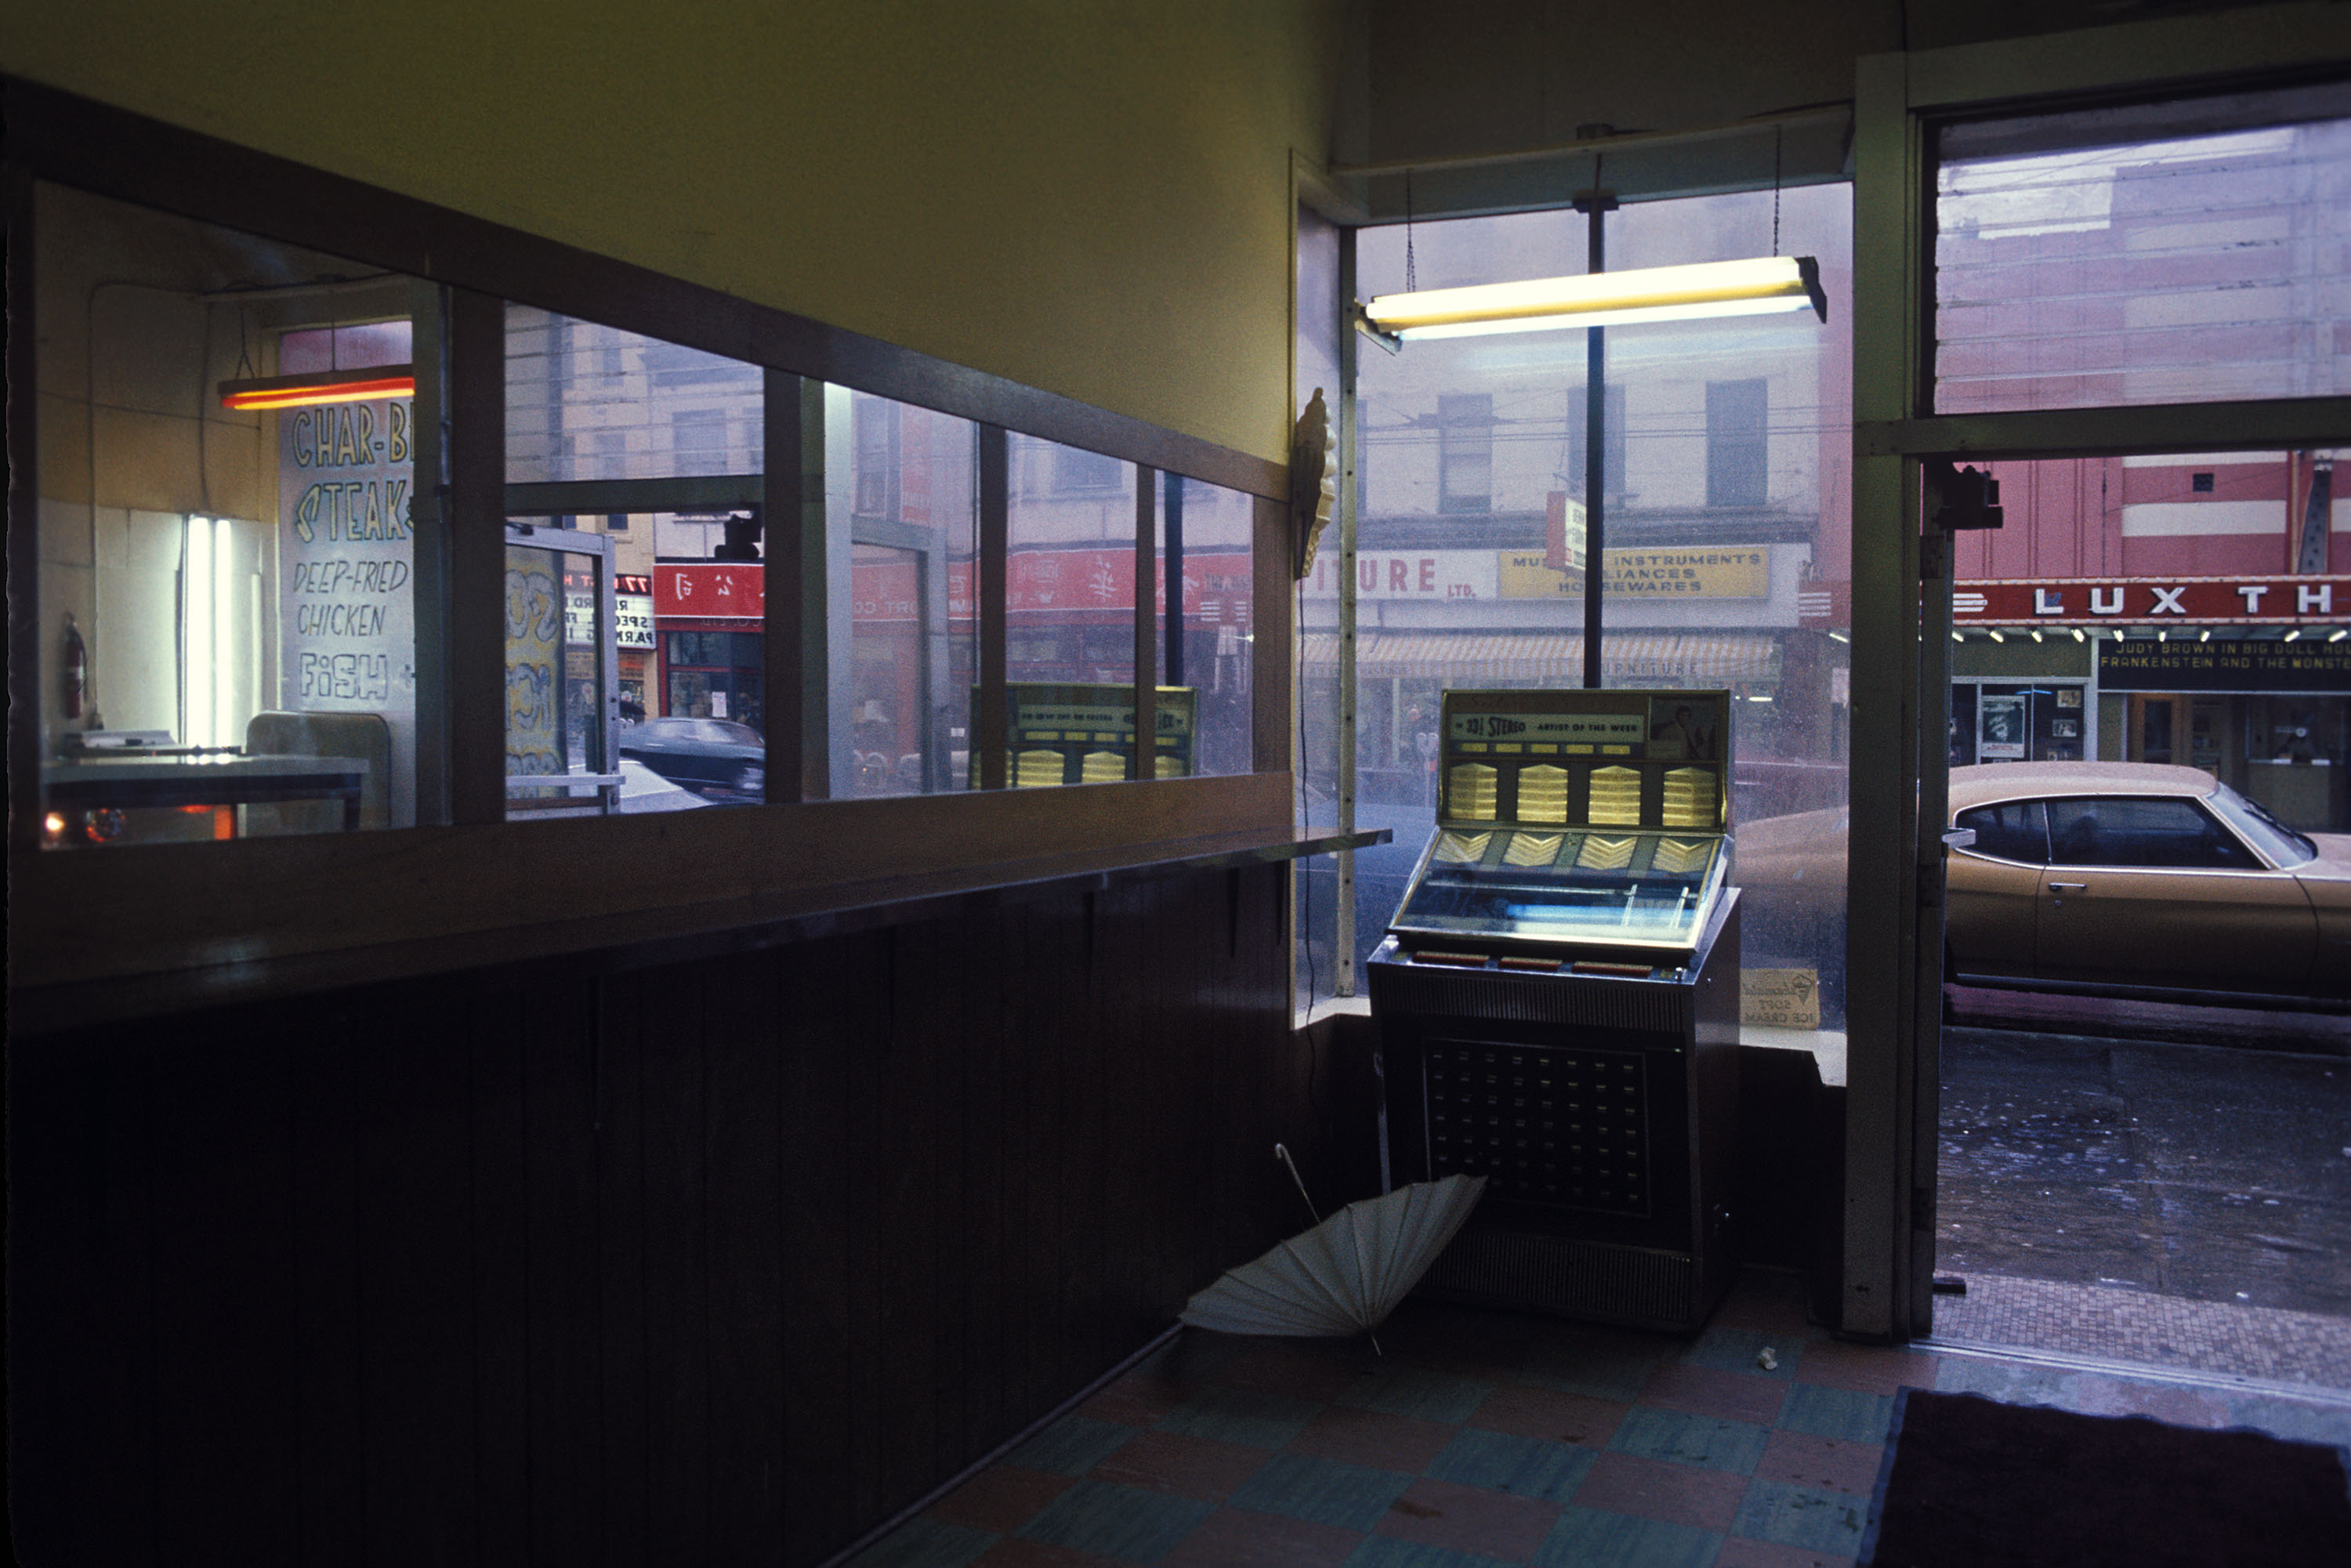 1200px version of 'Juke Box' by Greg Girard